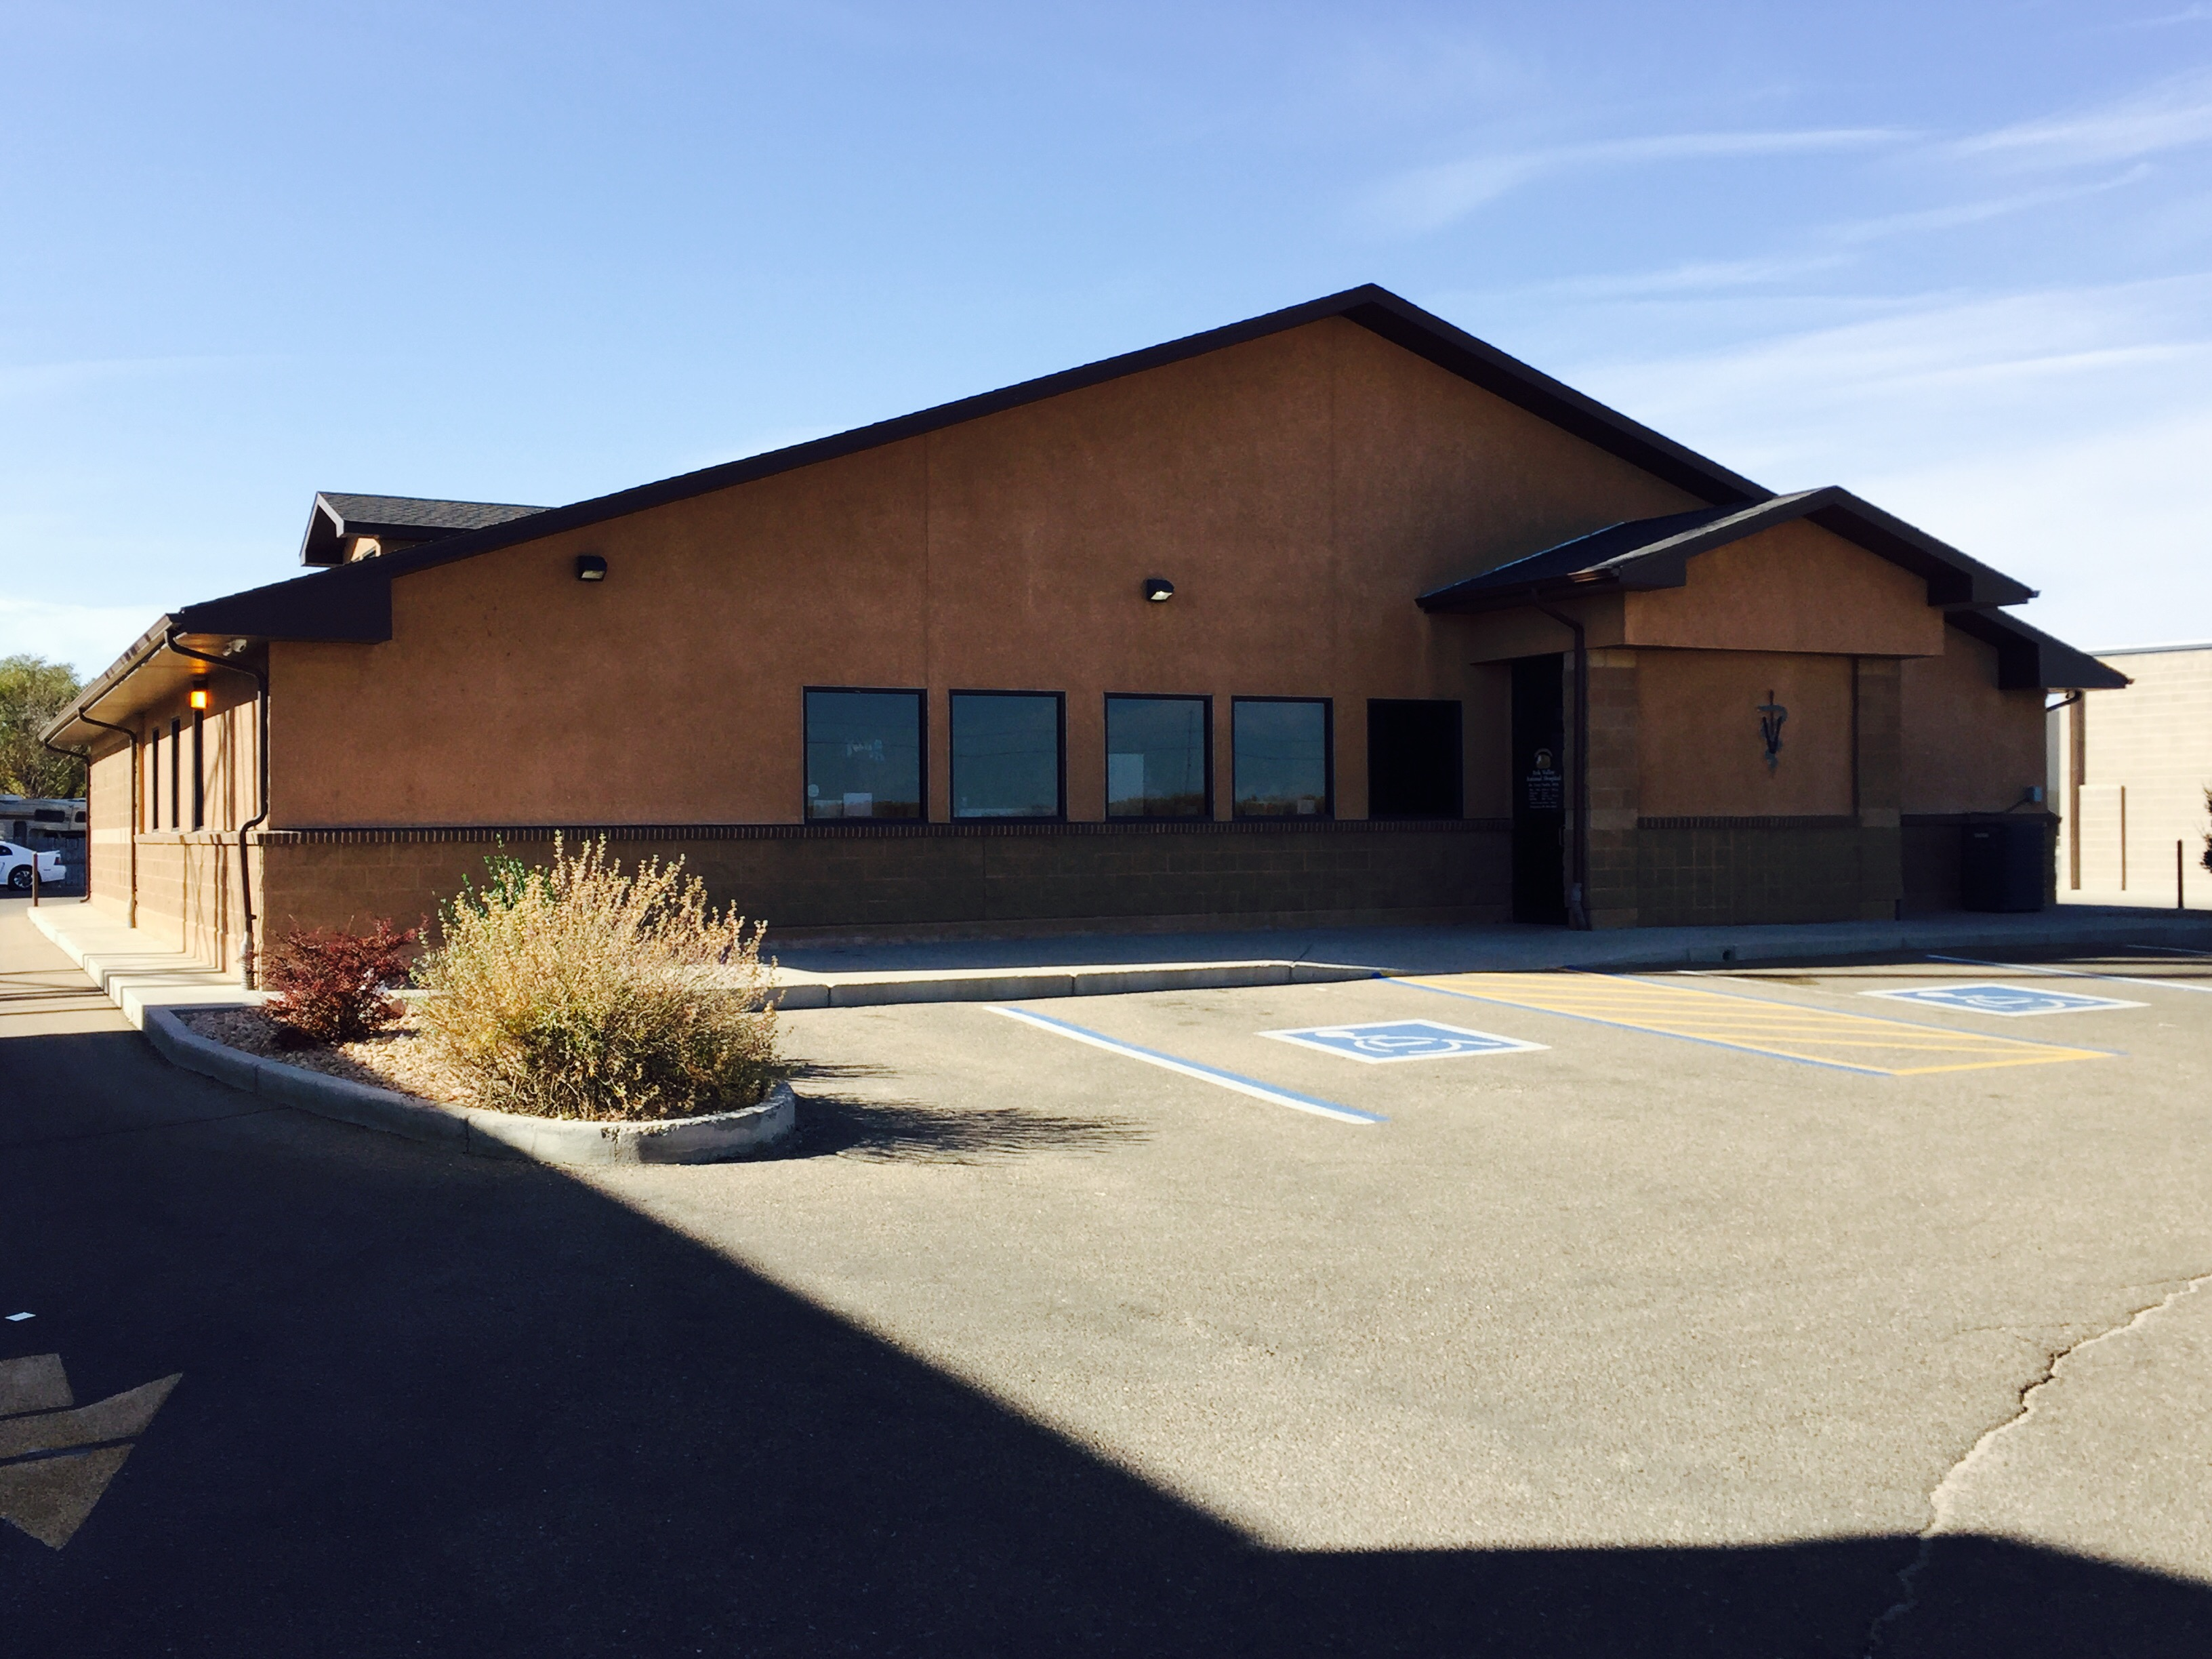 Image of: Franklin Tn Welcome Ark Valley Animal Hospital Twitter Ark Valley Animal Hospital Veterinarian